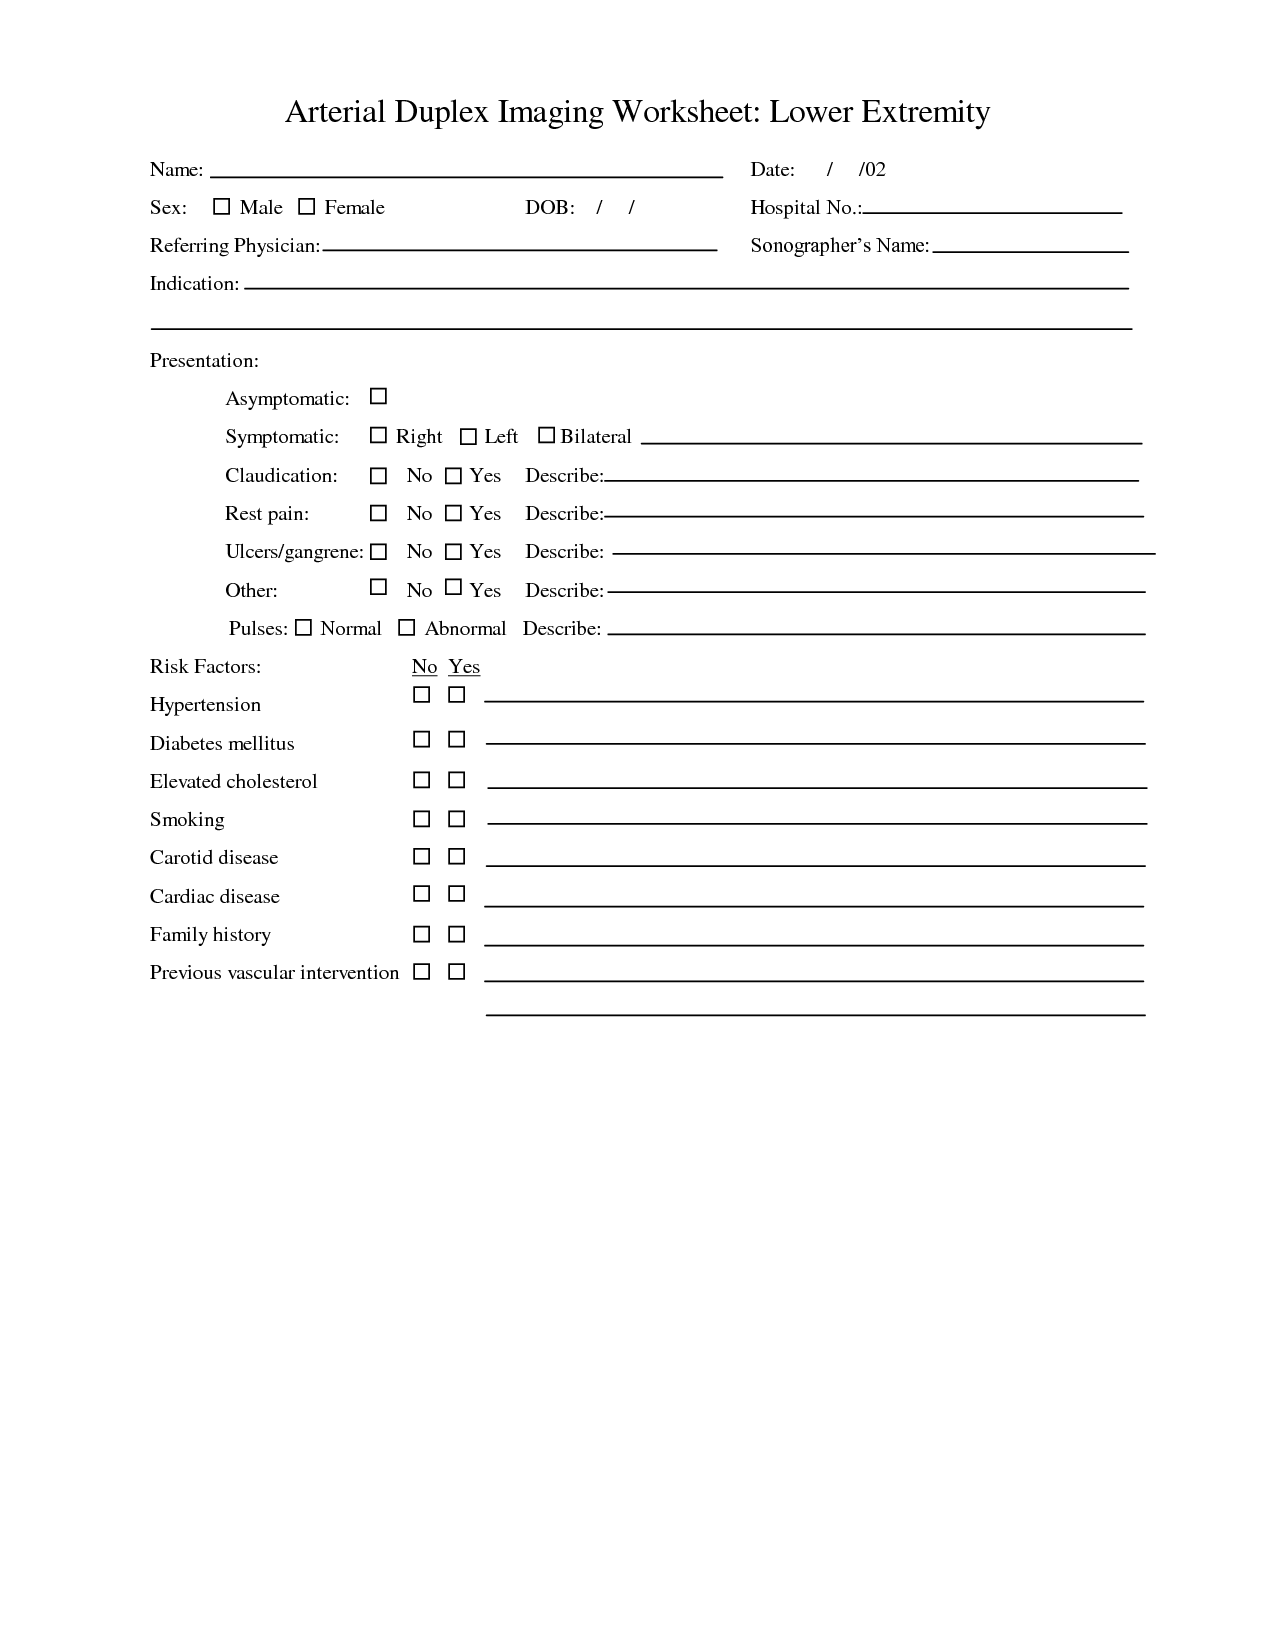 Arterial Ultrasound Worksheet